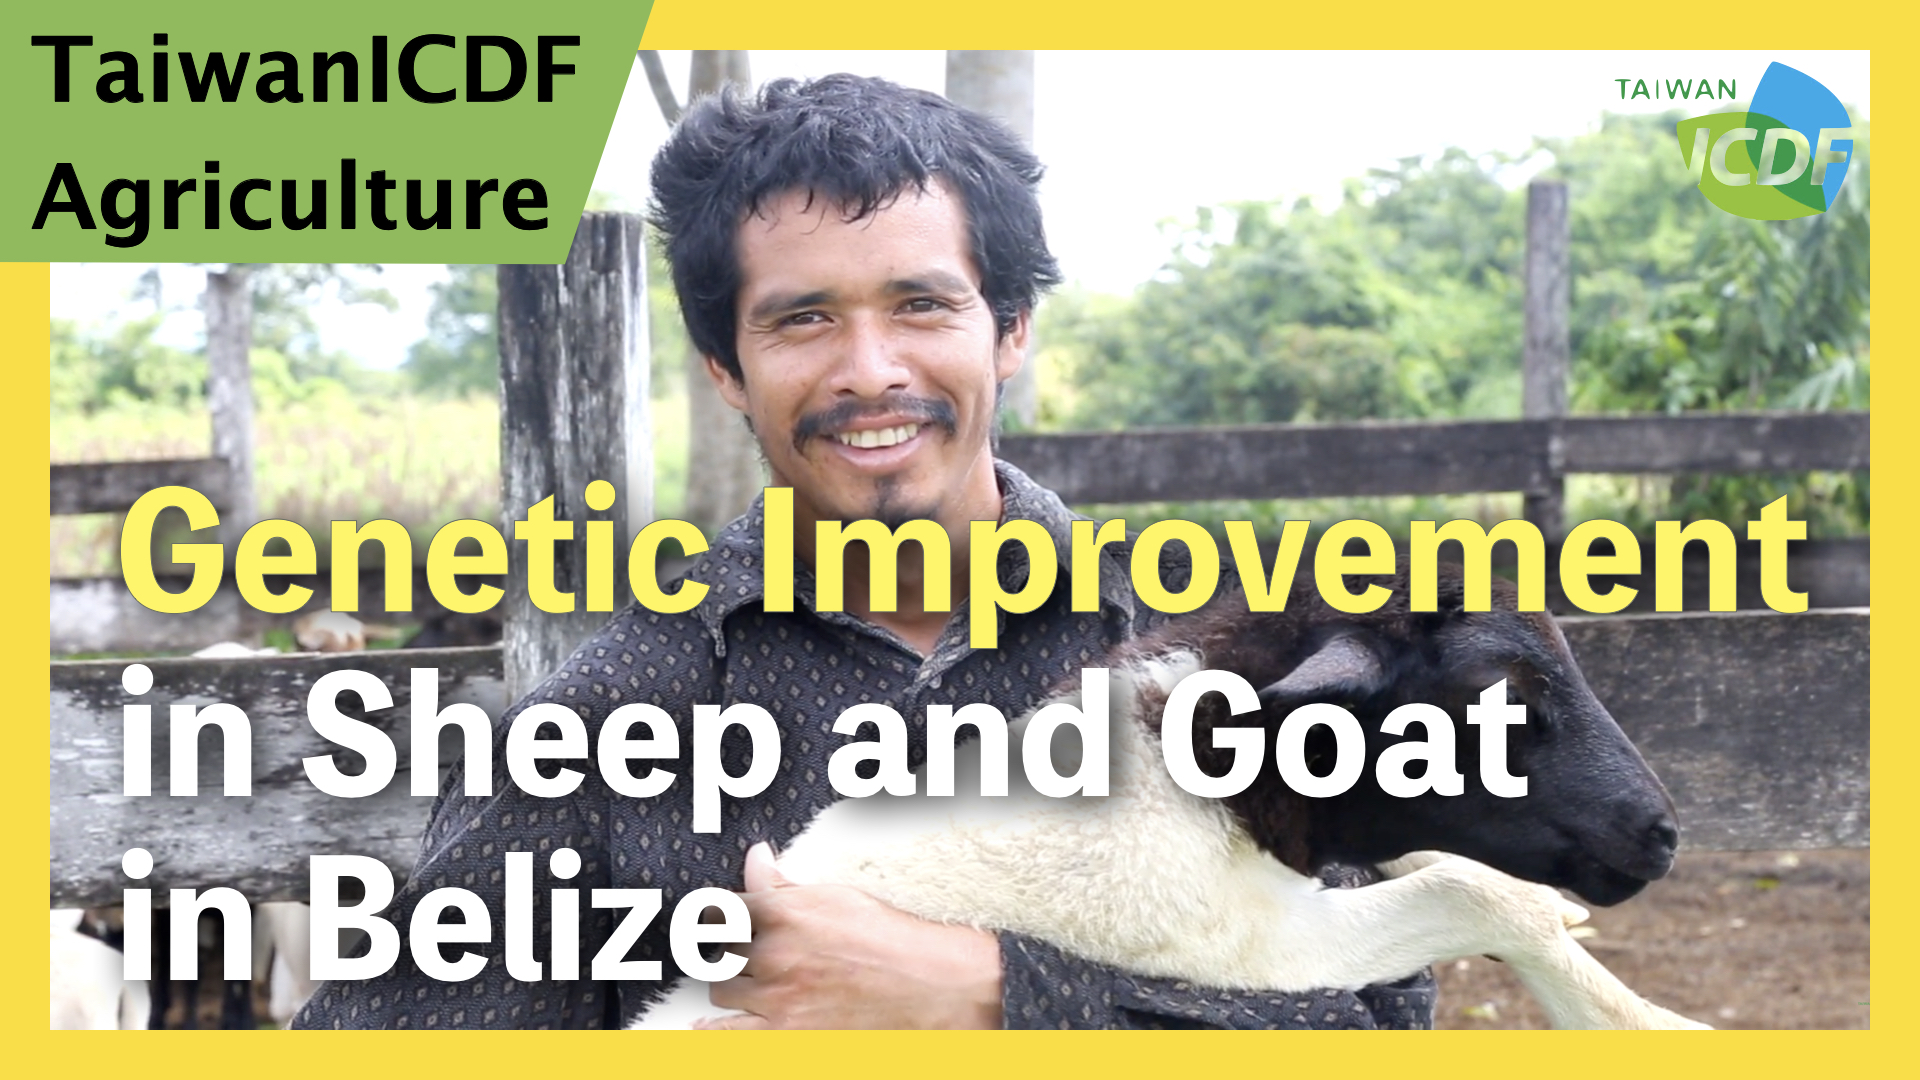 Genetic Improvement in Sheep and Goat Project (Belize)